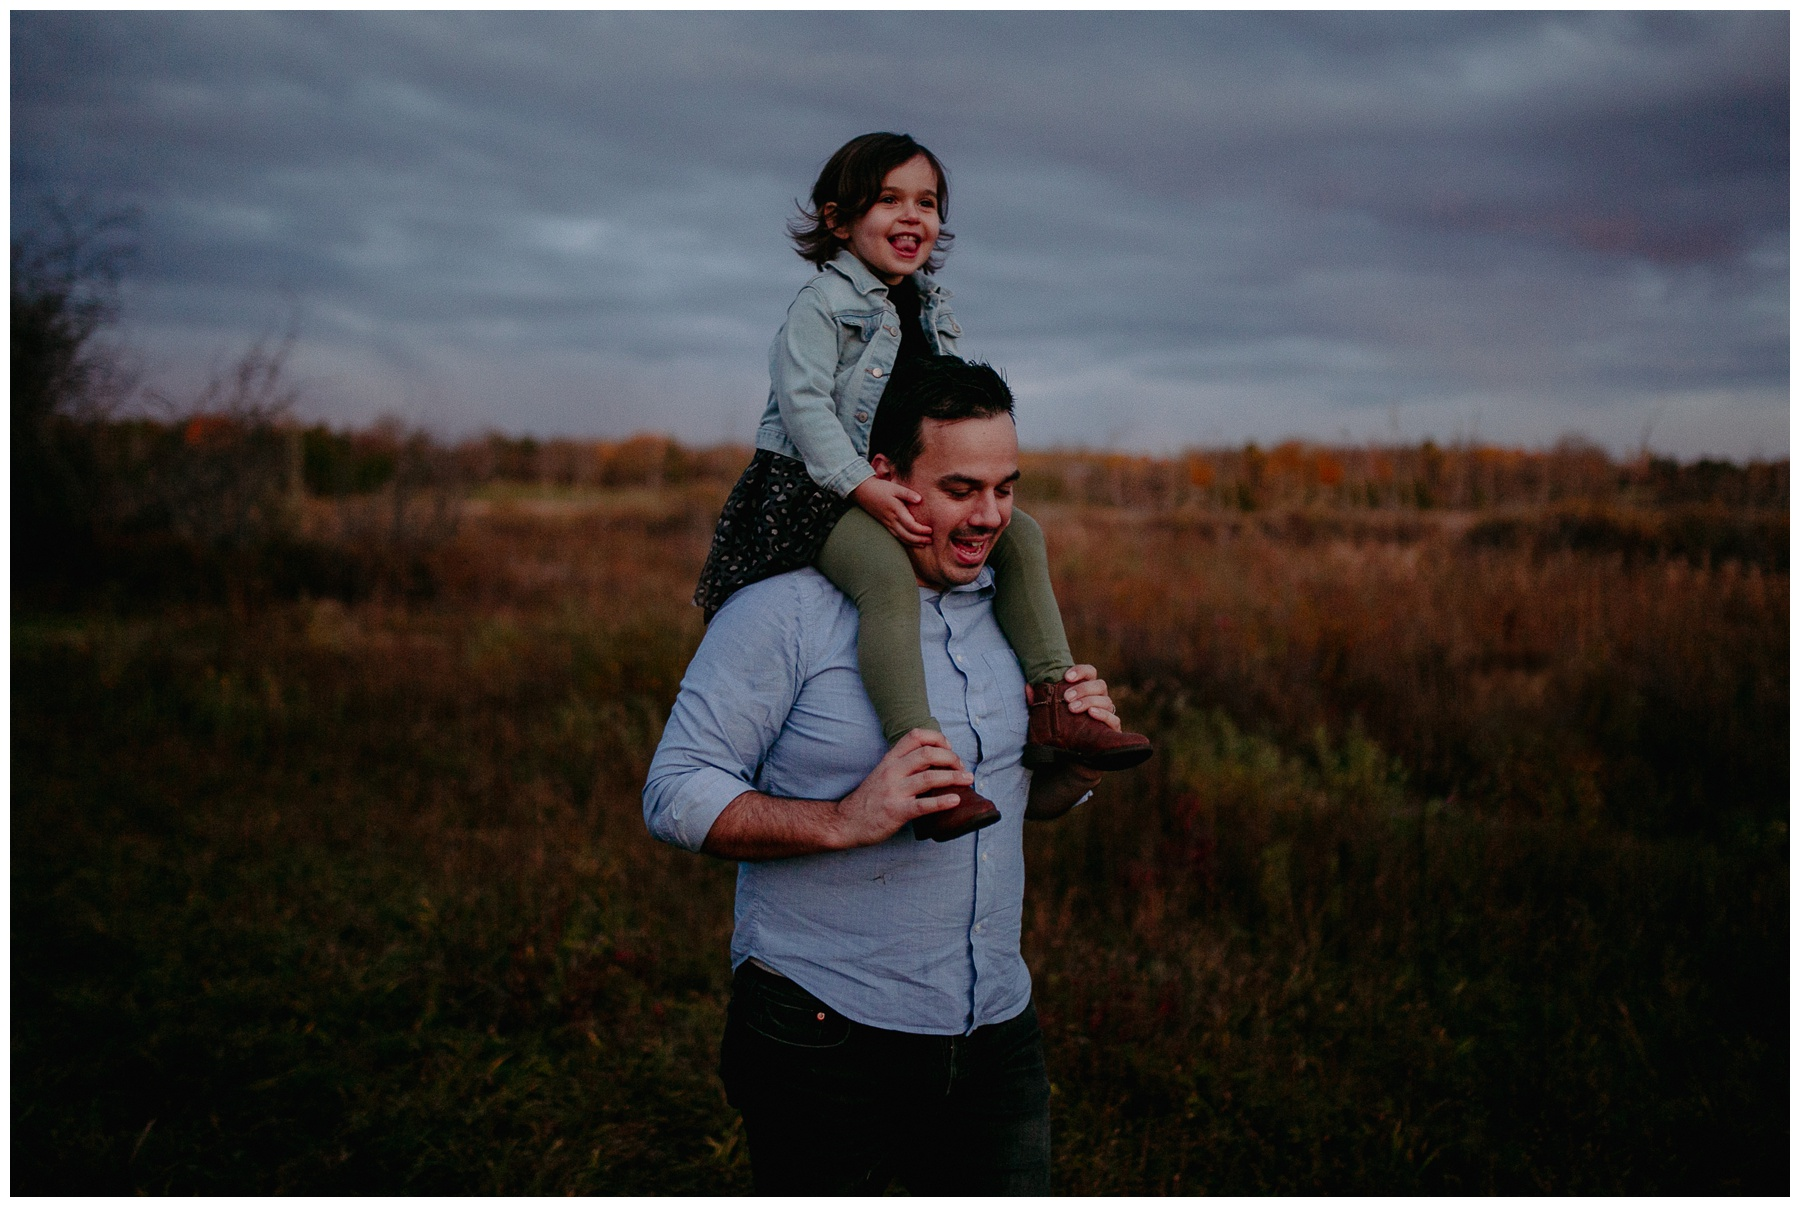 kerry ford photography - fall autumn family session perth063.jpg